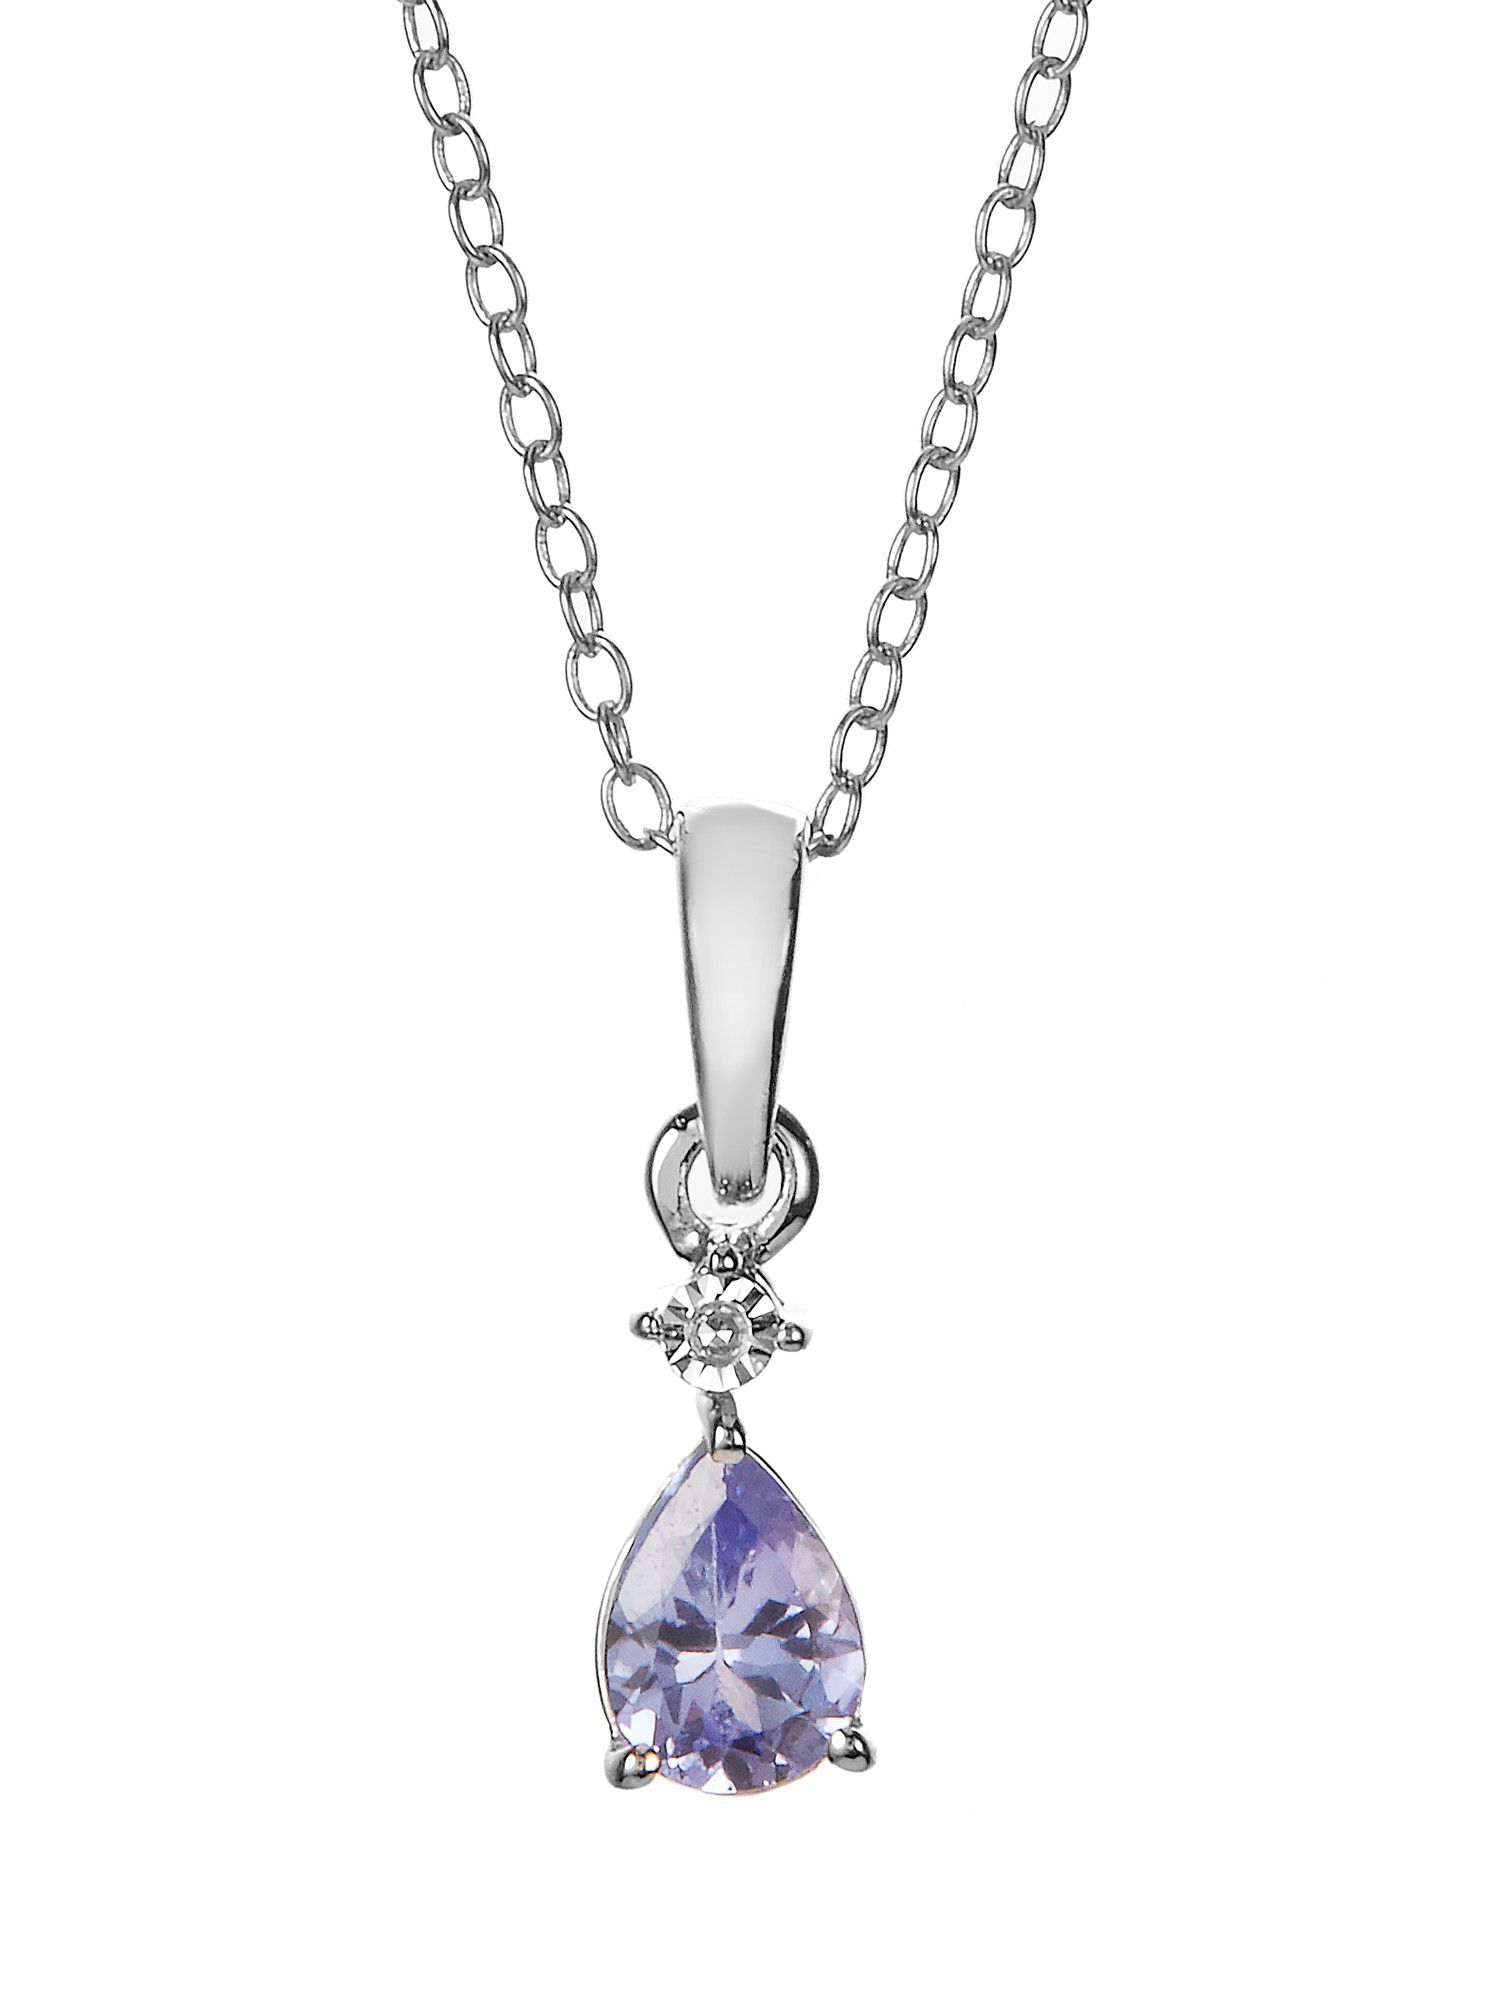 gemporia tanzanite necklace